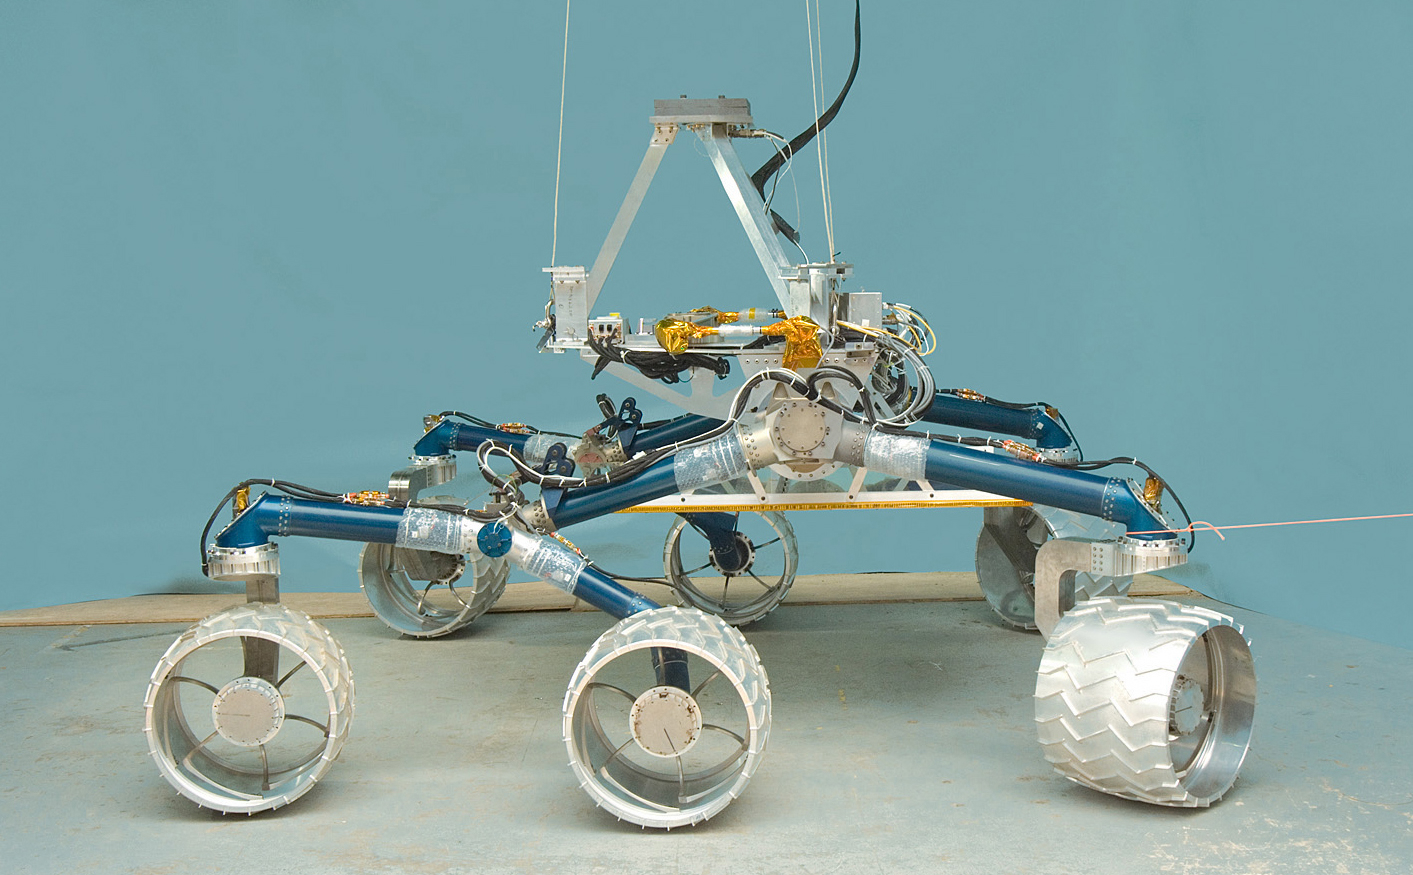 In this image, a large, six-wheeled rover sits on a concrete floor in a laboratory against a light-blue background.  The rover's 'legs,' or mobility system are a medium blue color and the large, cleated wheels are shiny silver.  On top of the mobility system is a silver-colored triangle that represents where the heart and brains of the rover will go when it is complete.